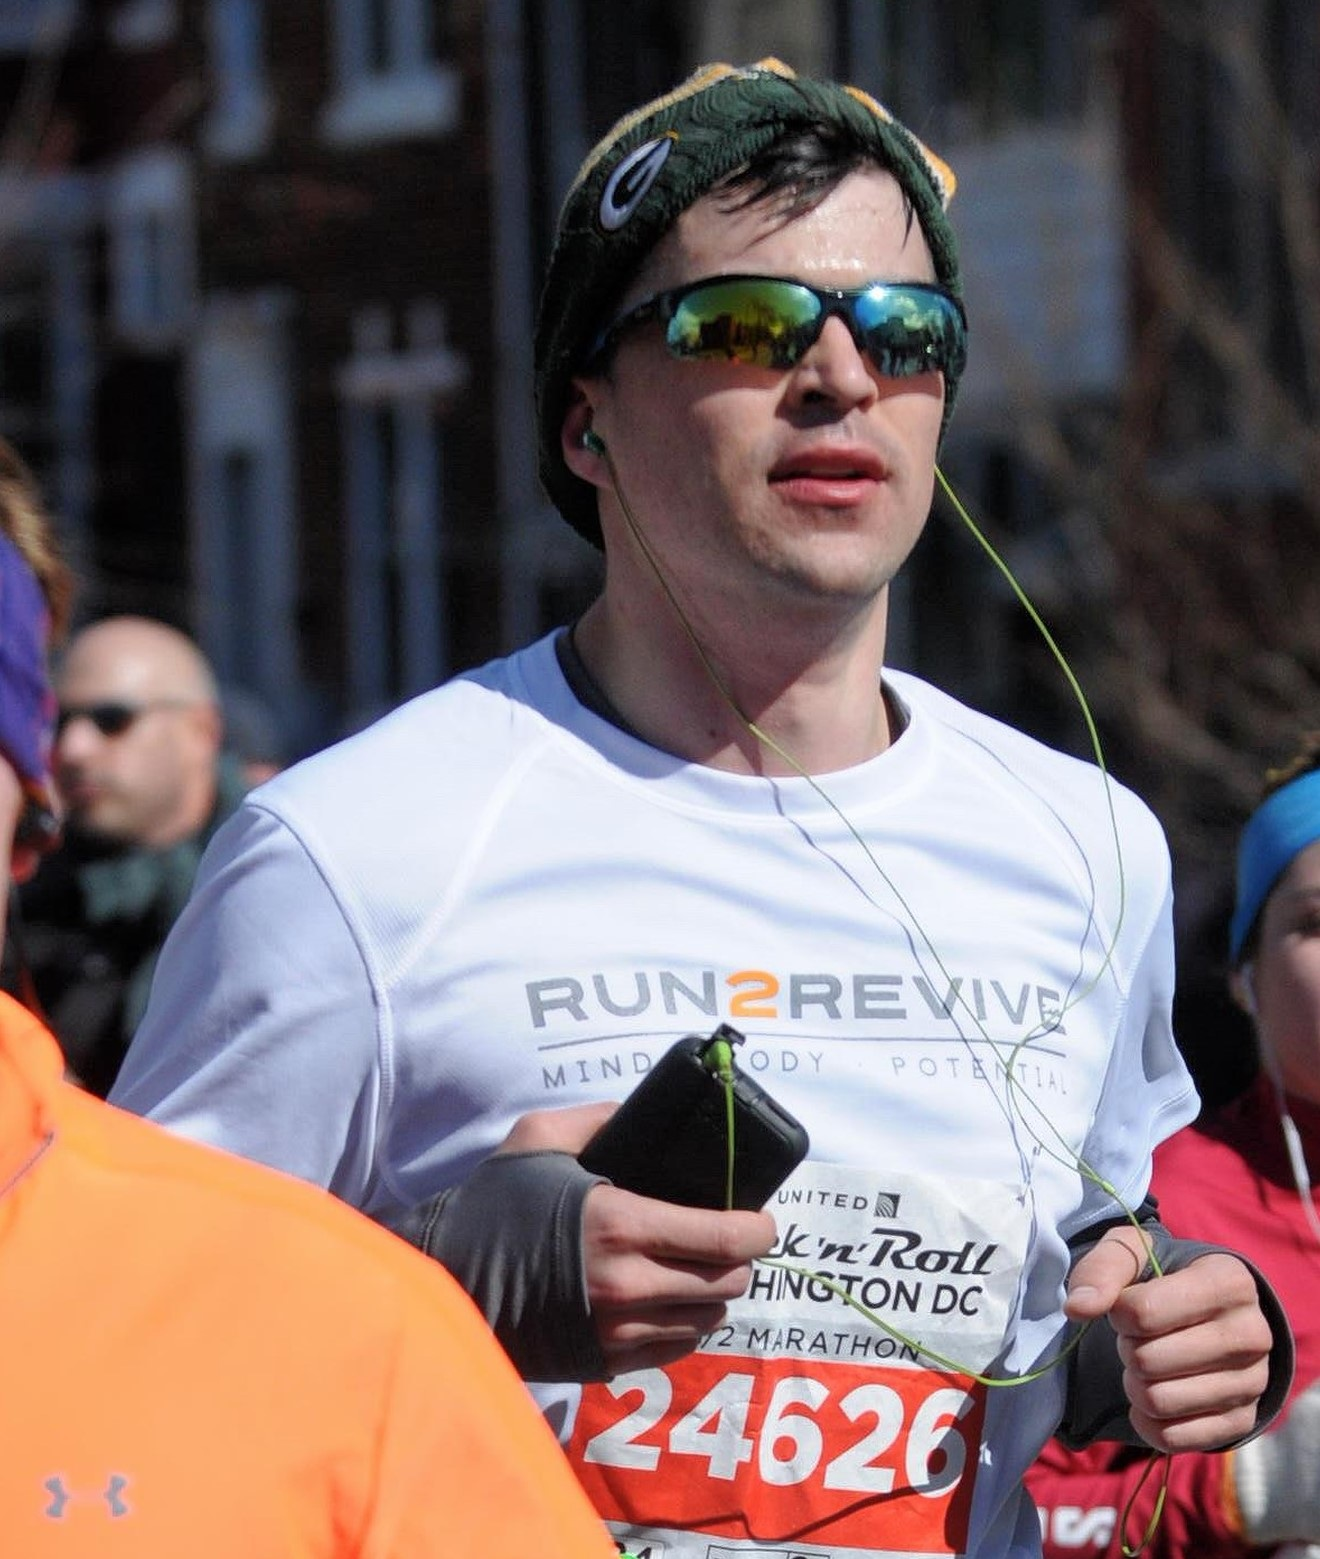 GREG'S 5K A DAY - The last time I stepped up for Run2Revive, and you all stepped up for me, was the DC Rock'n'Roll 1/2 Marathon in March of 2017. I was proud to come in under 2 hours for my first half, and raise over a thousand dollars for Run2Revive. But that was the last run I went on for the next two years. This summer, I've hit the pavement again.For the month of September, I'm asking you to support me as I run (at least) a 5K a day for the month. Donate below to help me run 2 revive and fund research to find cures for Alzheimer's and ALS.